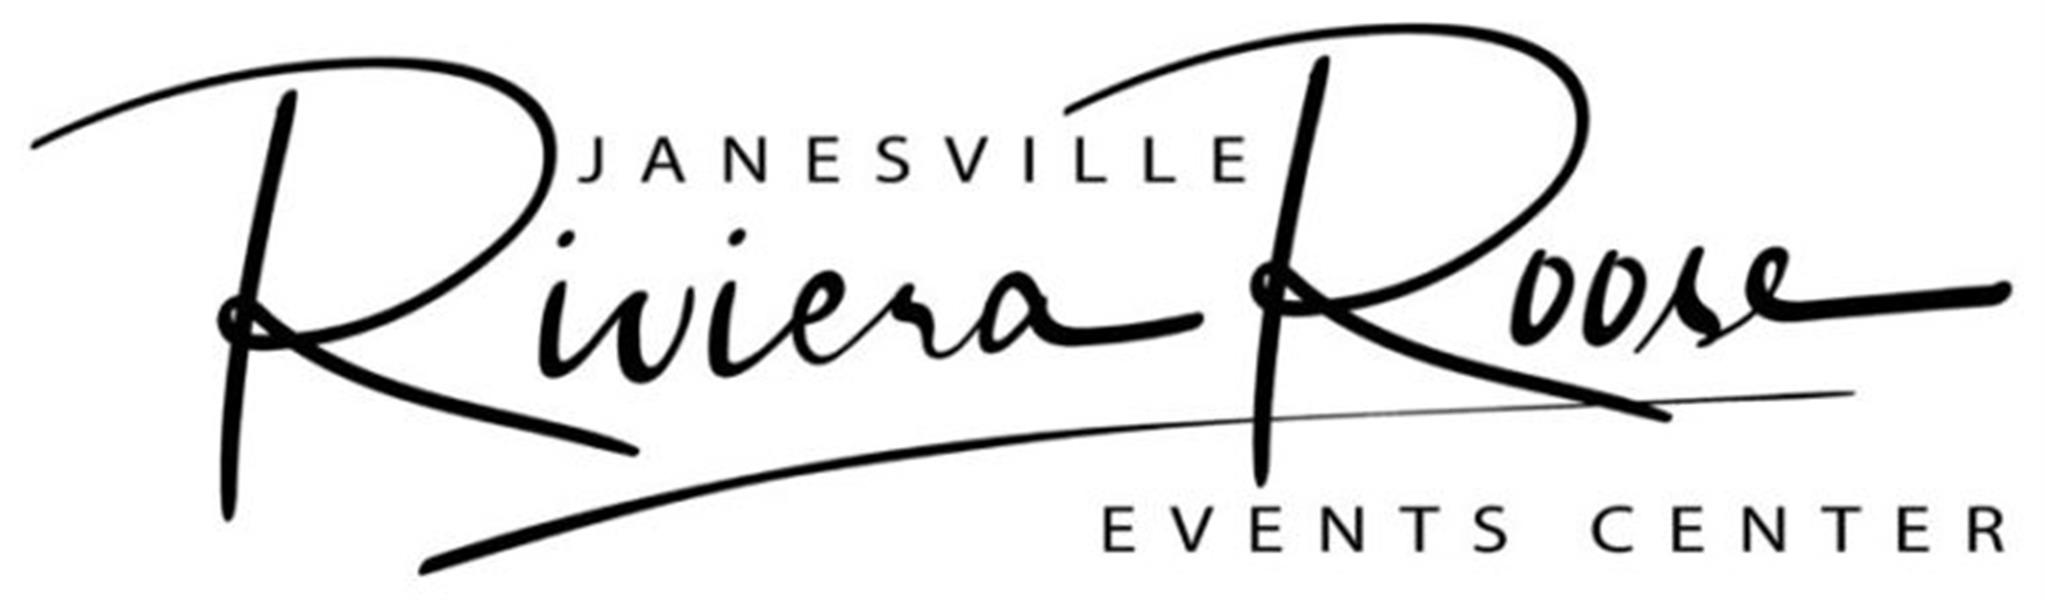 Janesville Riviera-Roose Events Center